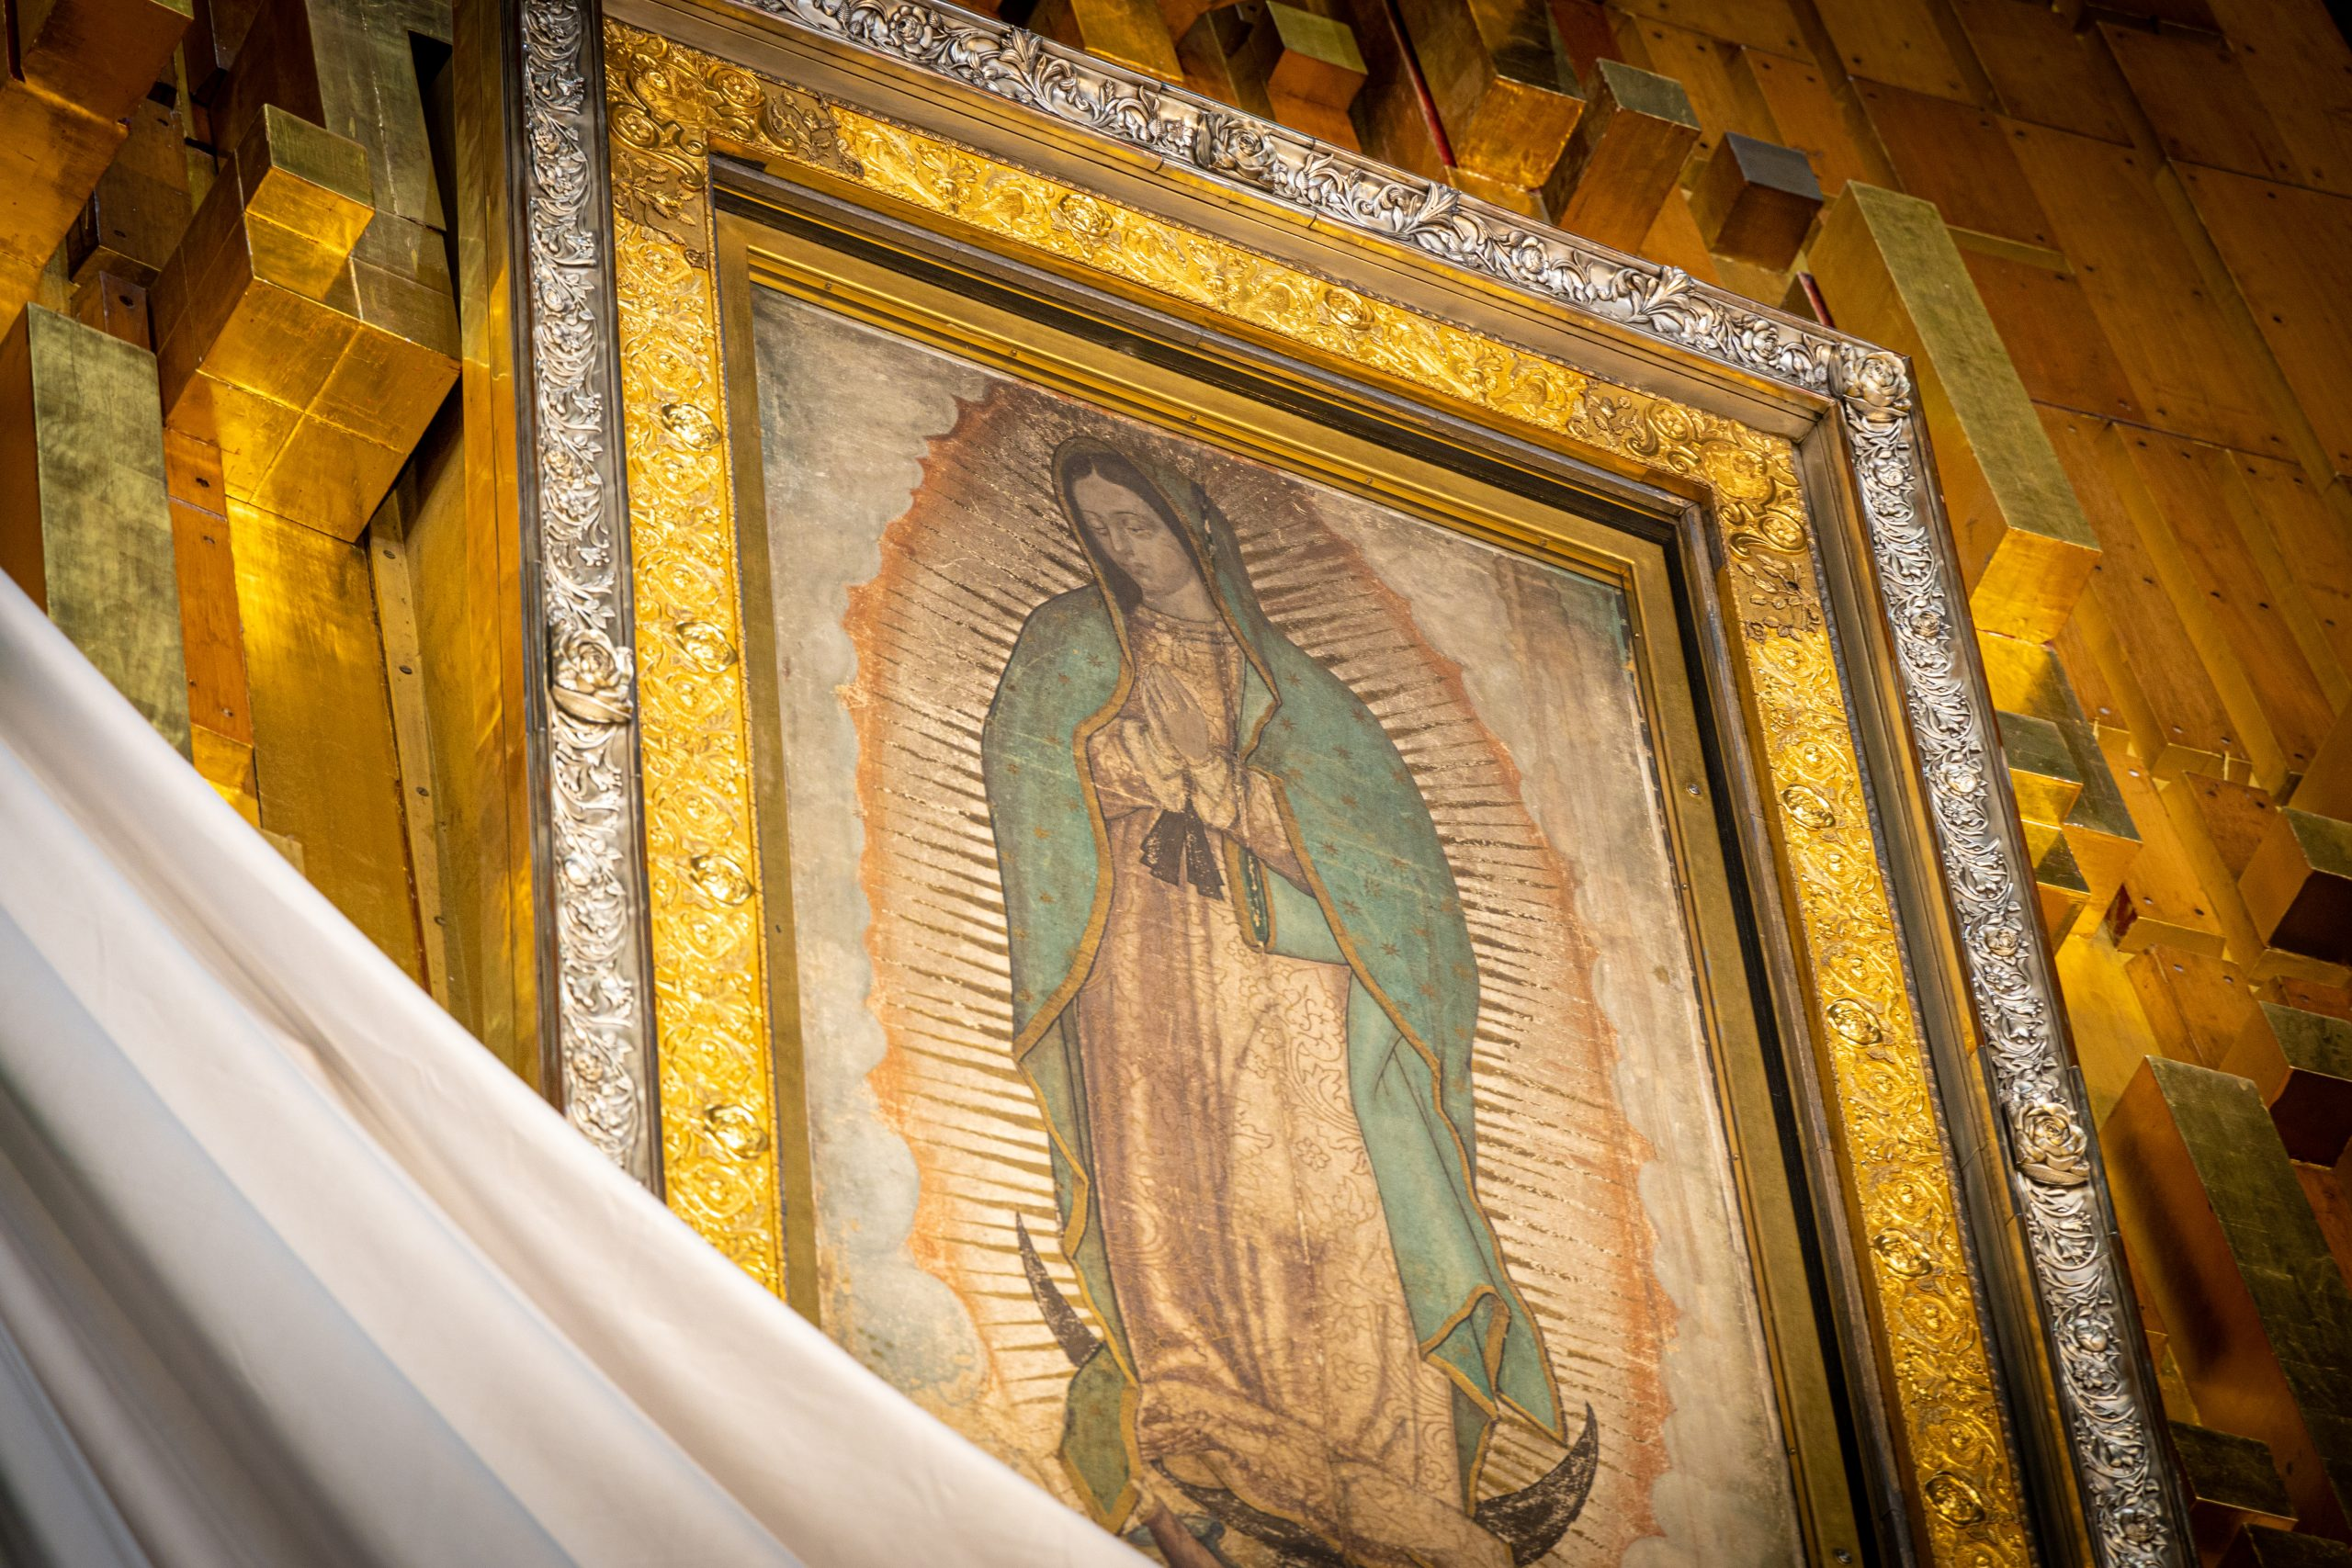 We need to kneel before Our Lady of Guadalupe together